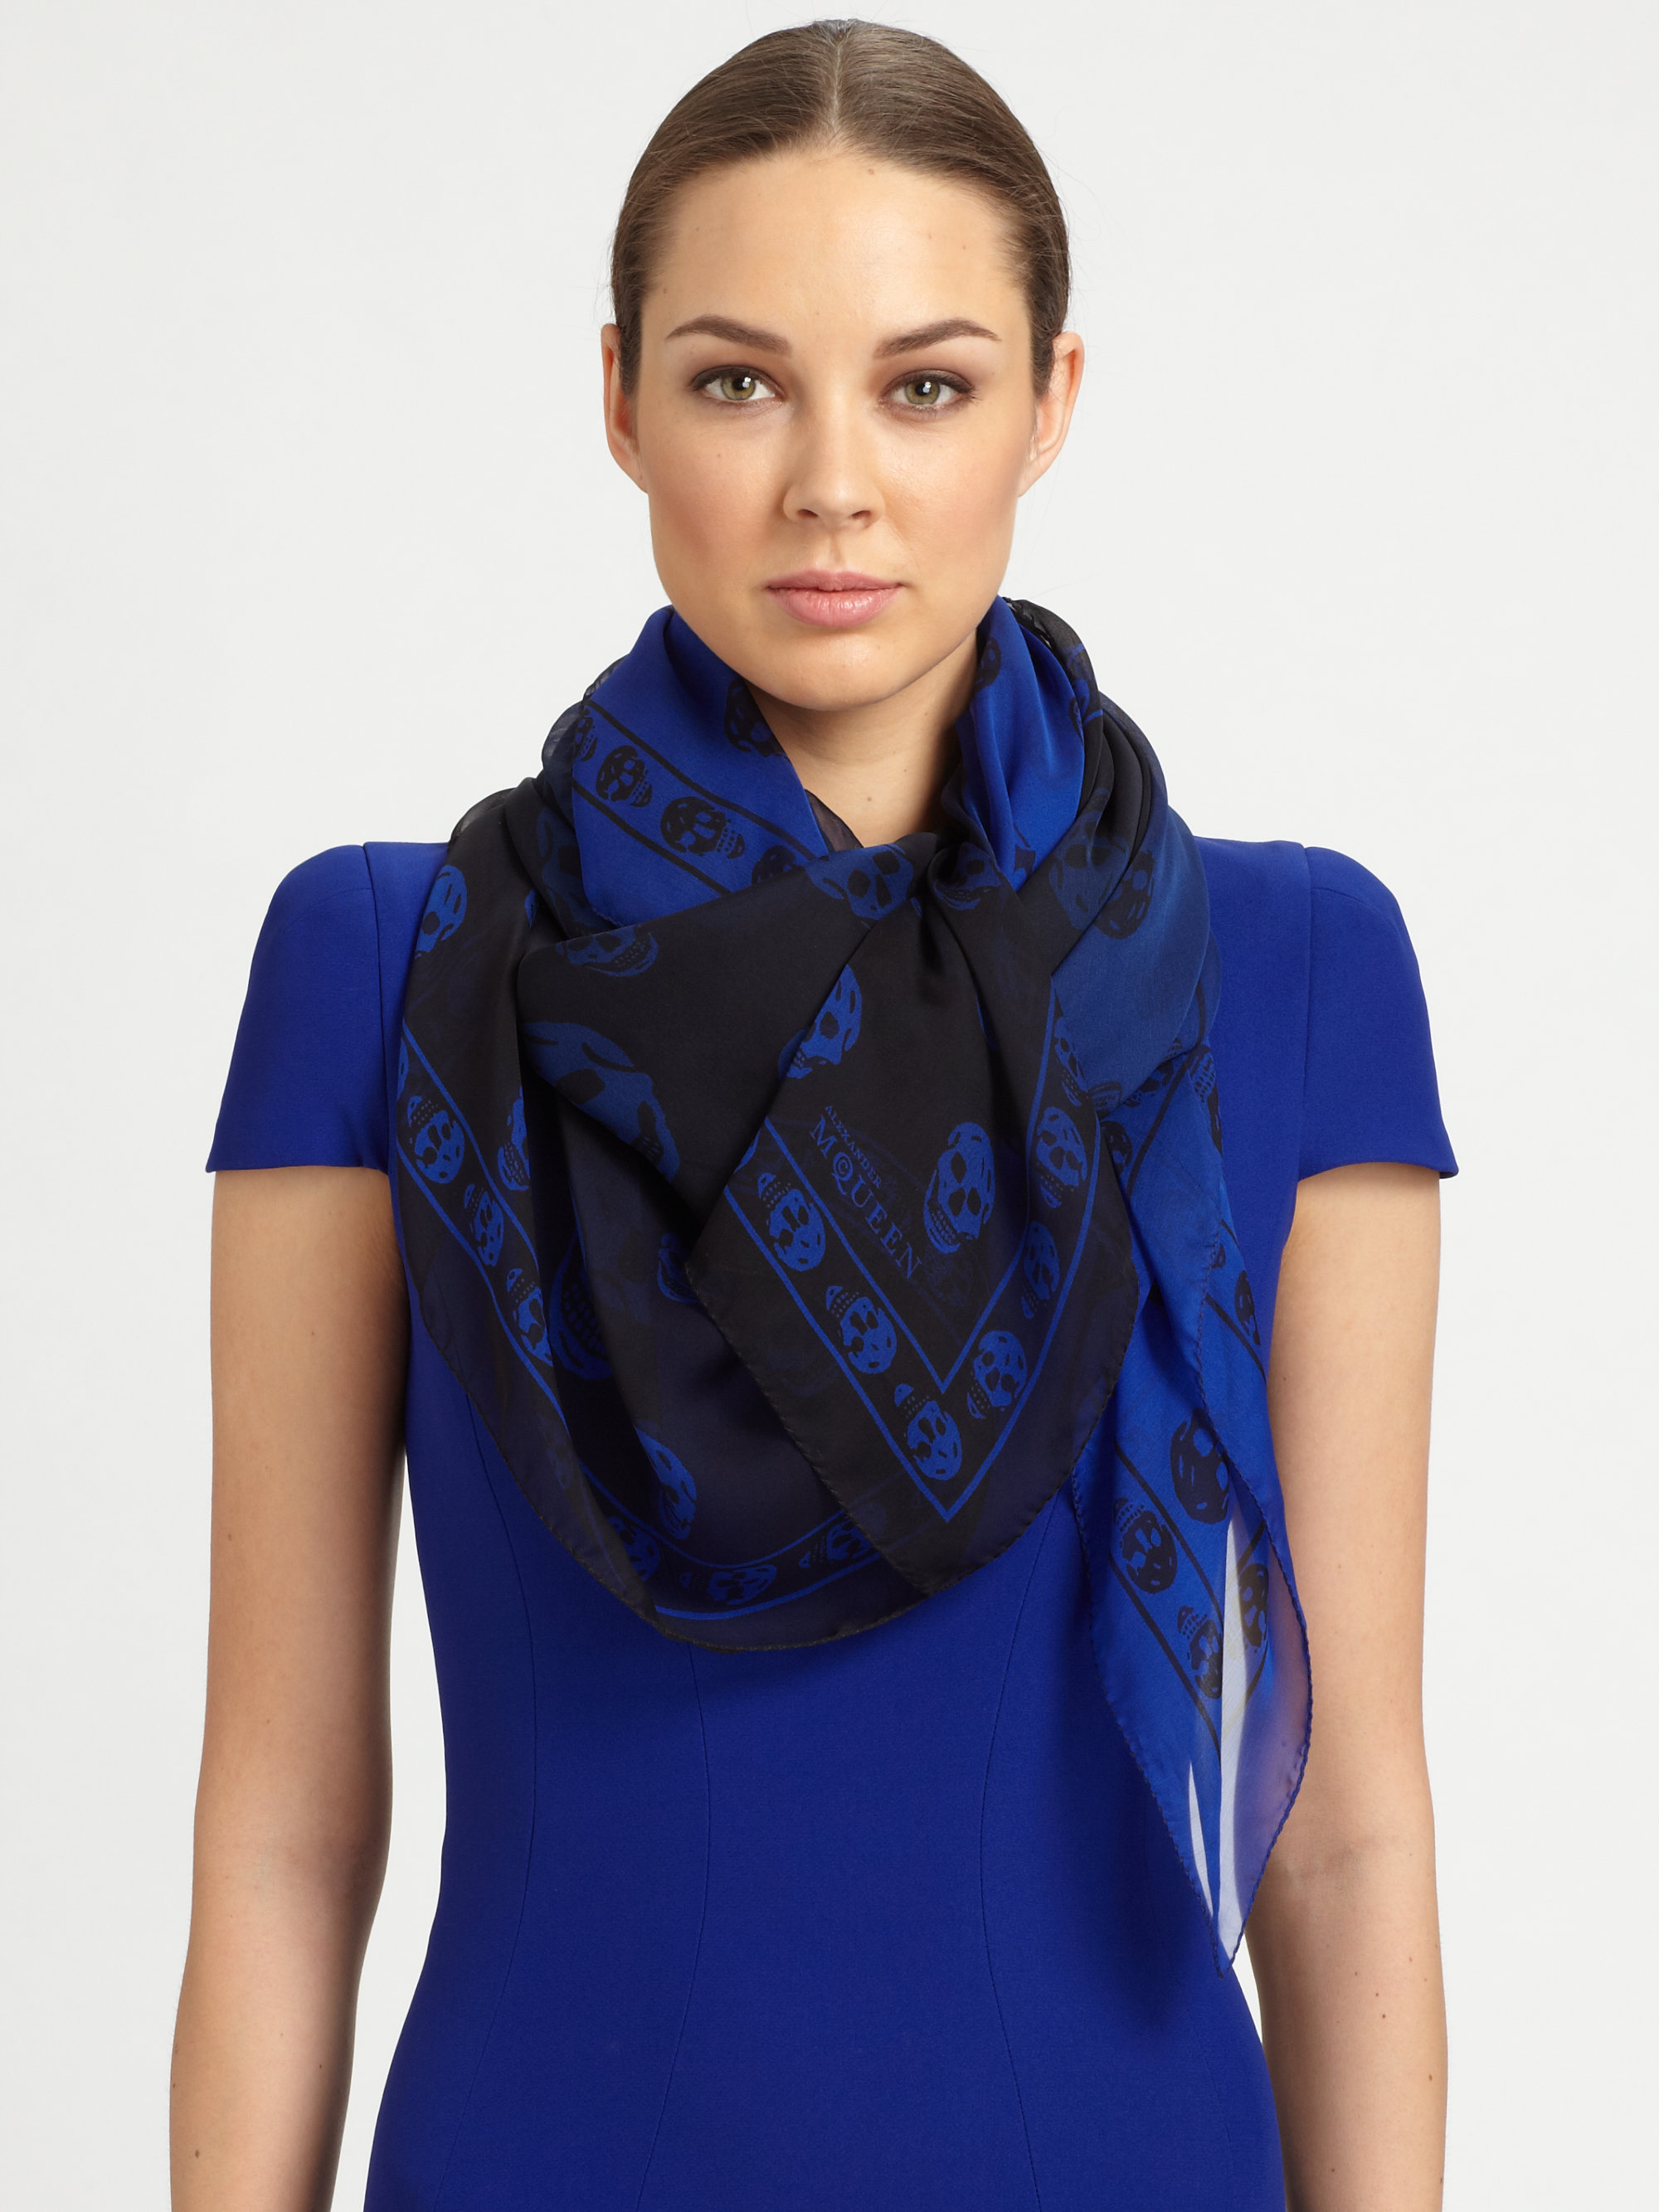 Alexander mcqueen Degrade Skull Silk Scarf in Blue | Lyst